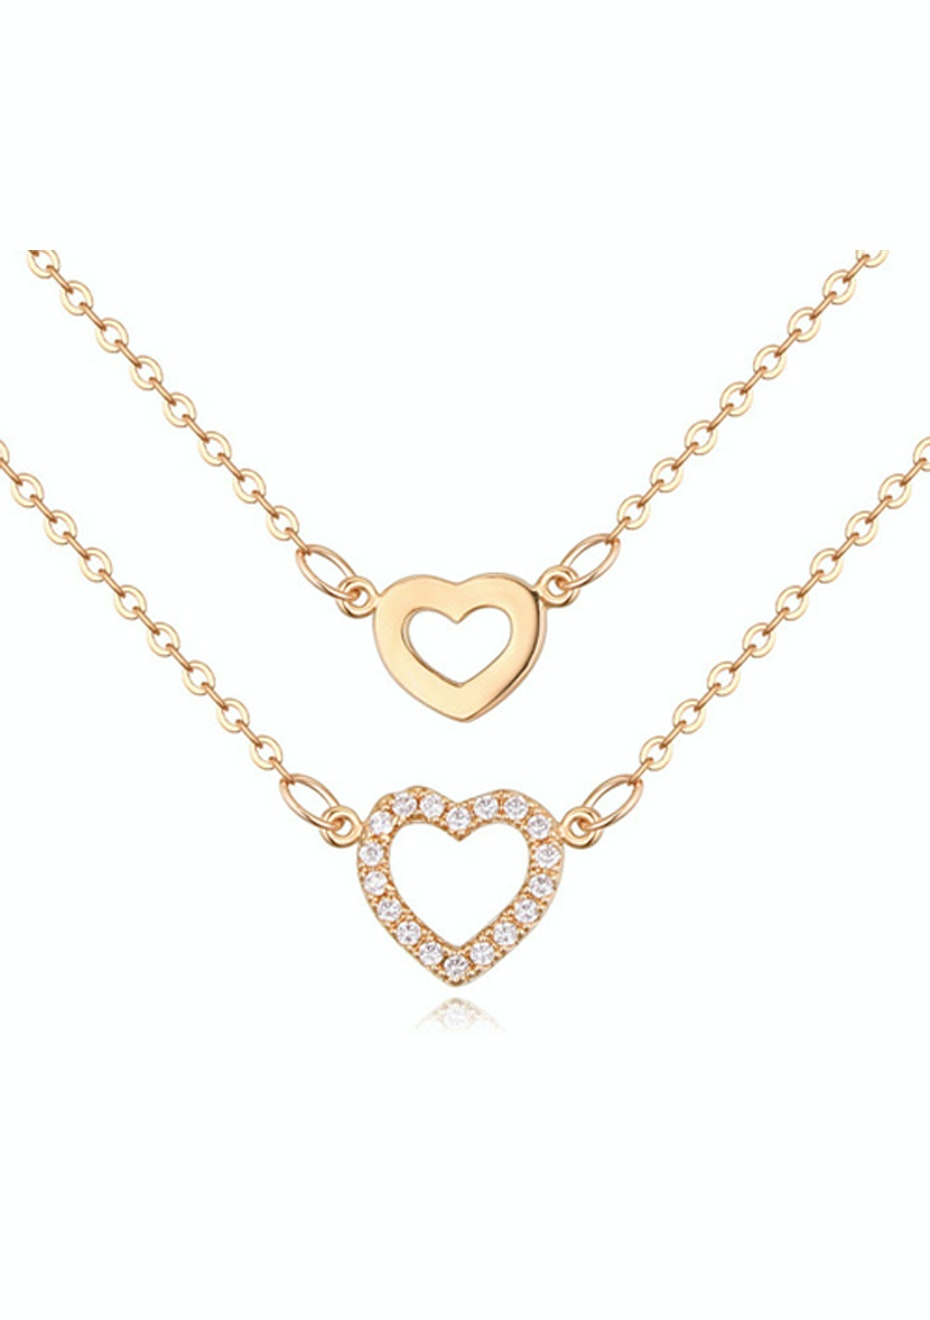 Dual Heart Pendant Necklace Embellished with Crystals from Swarovski -G